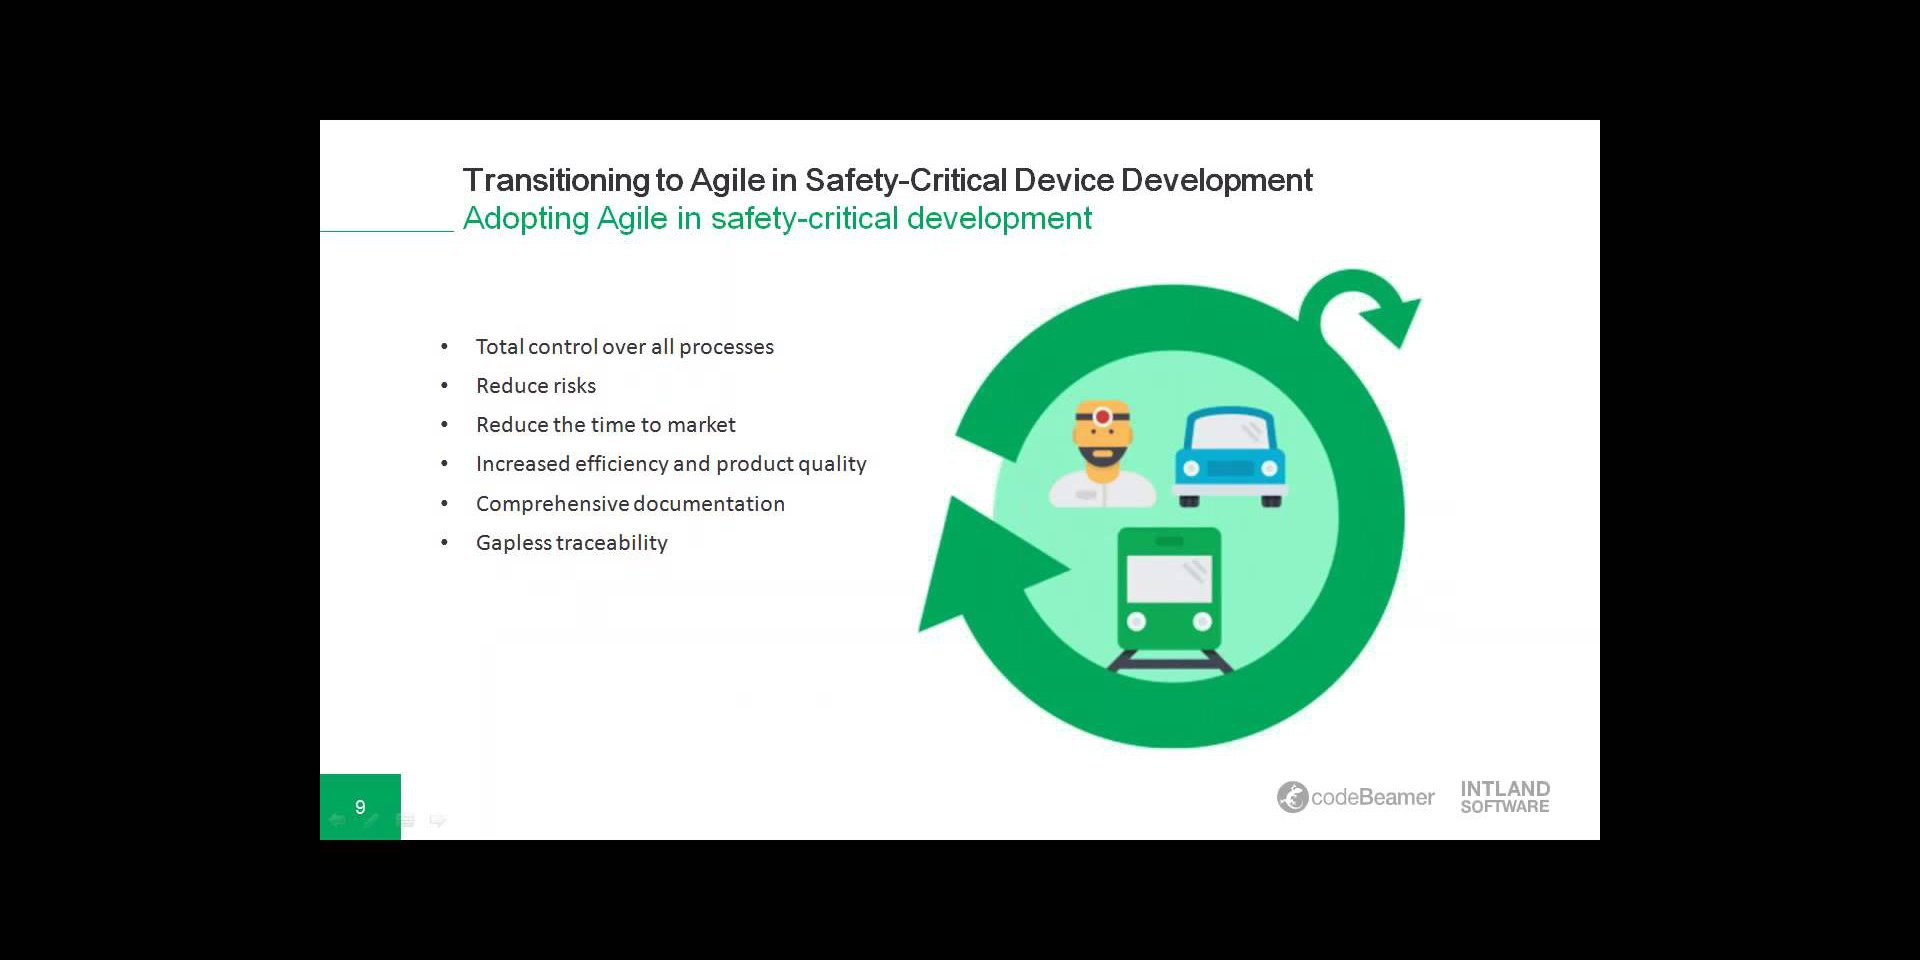 swatch Transitioning to Agile in Safety-Critical Device Development webinar recording